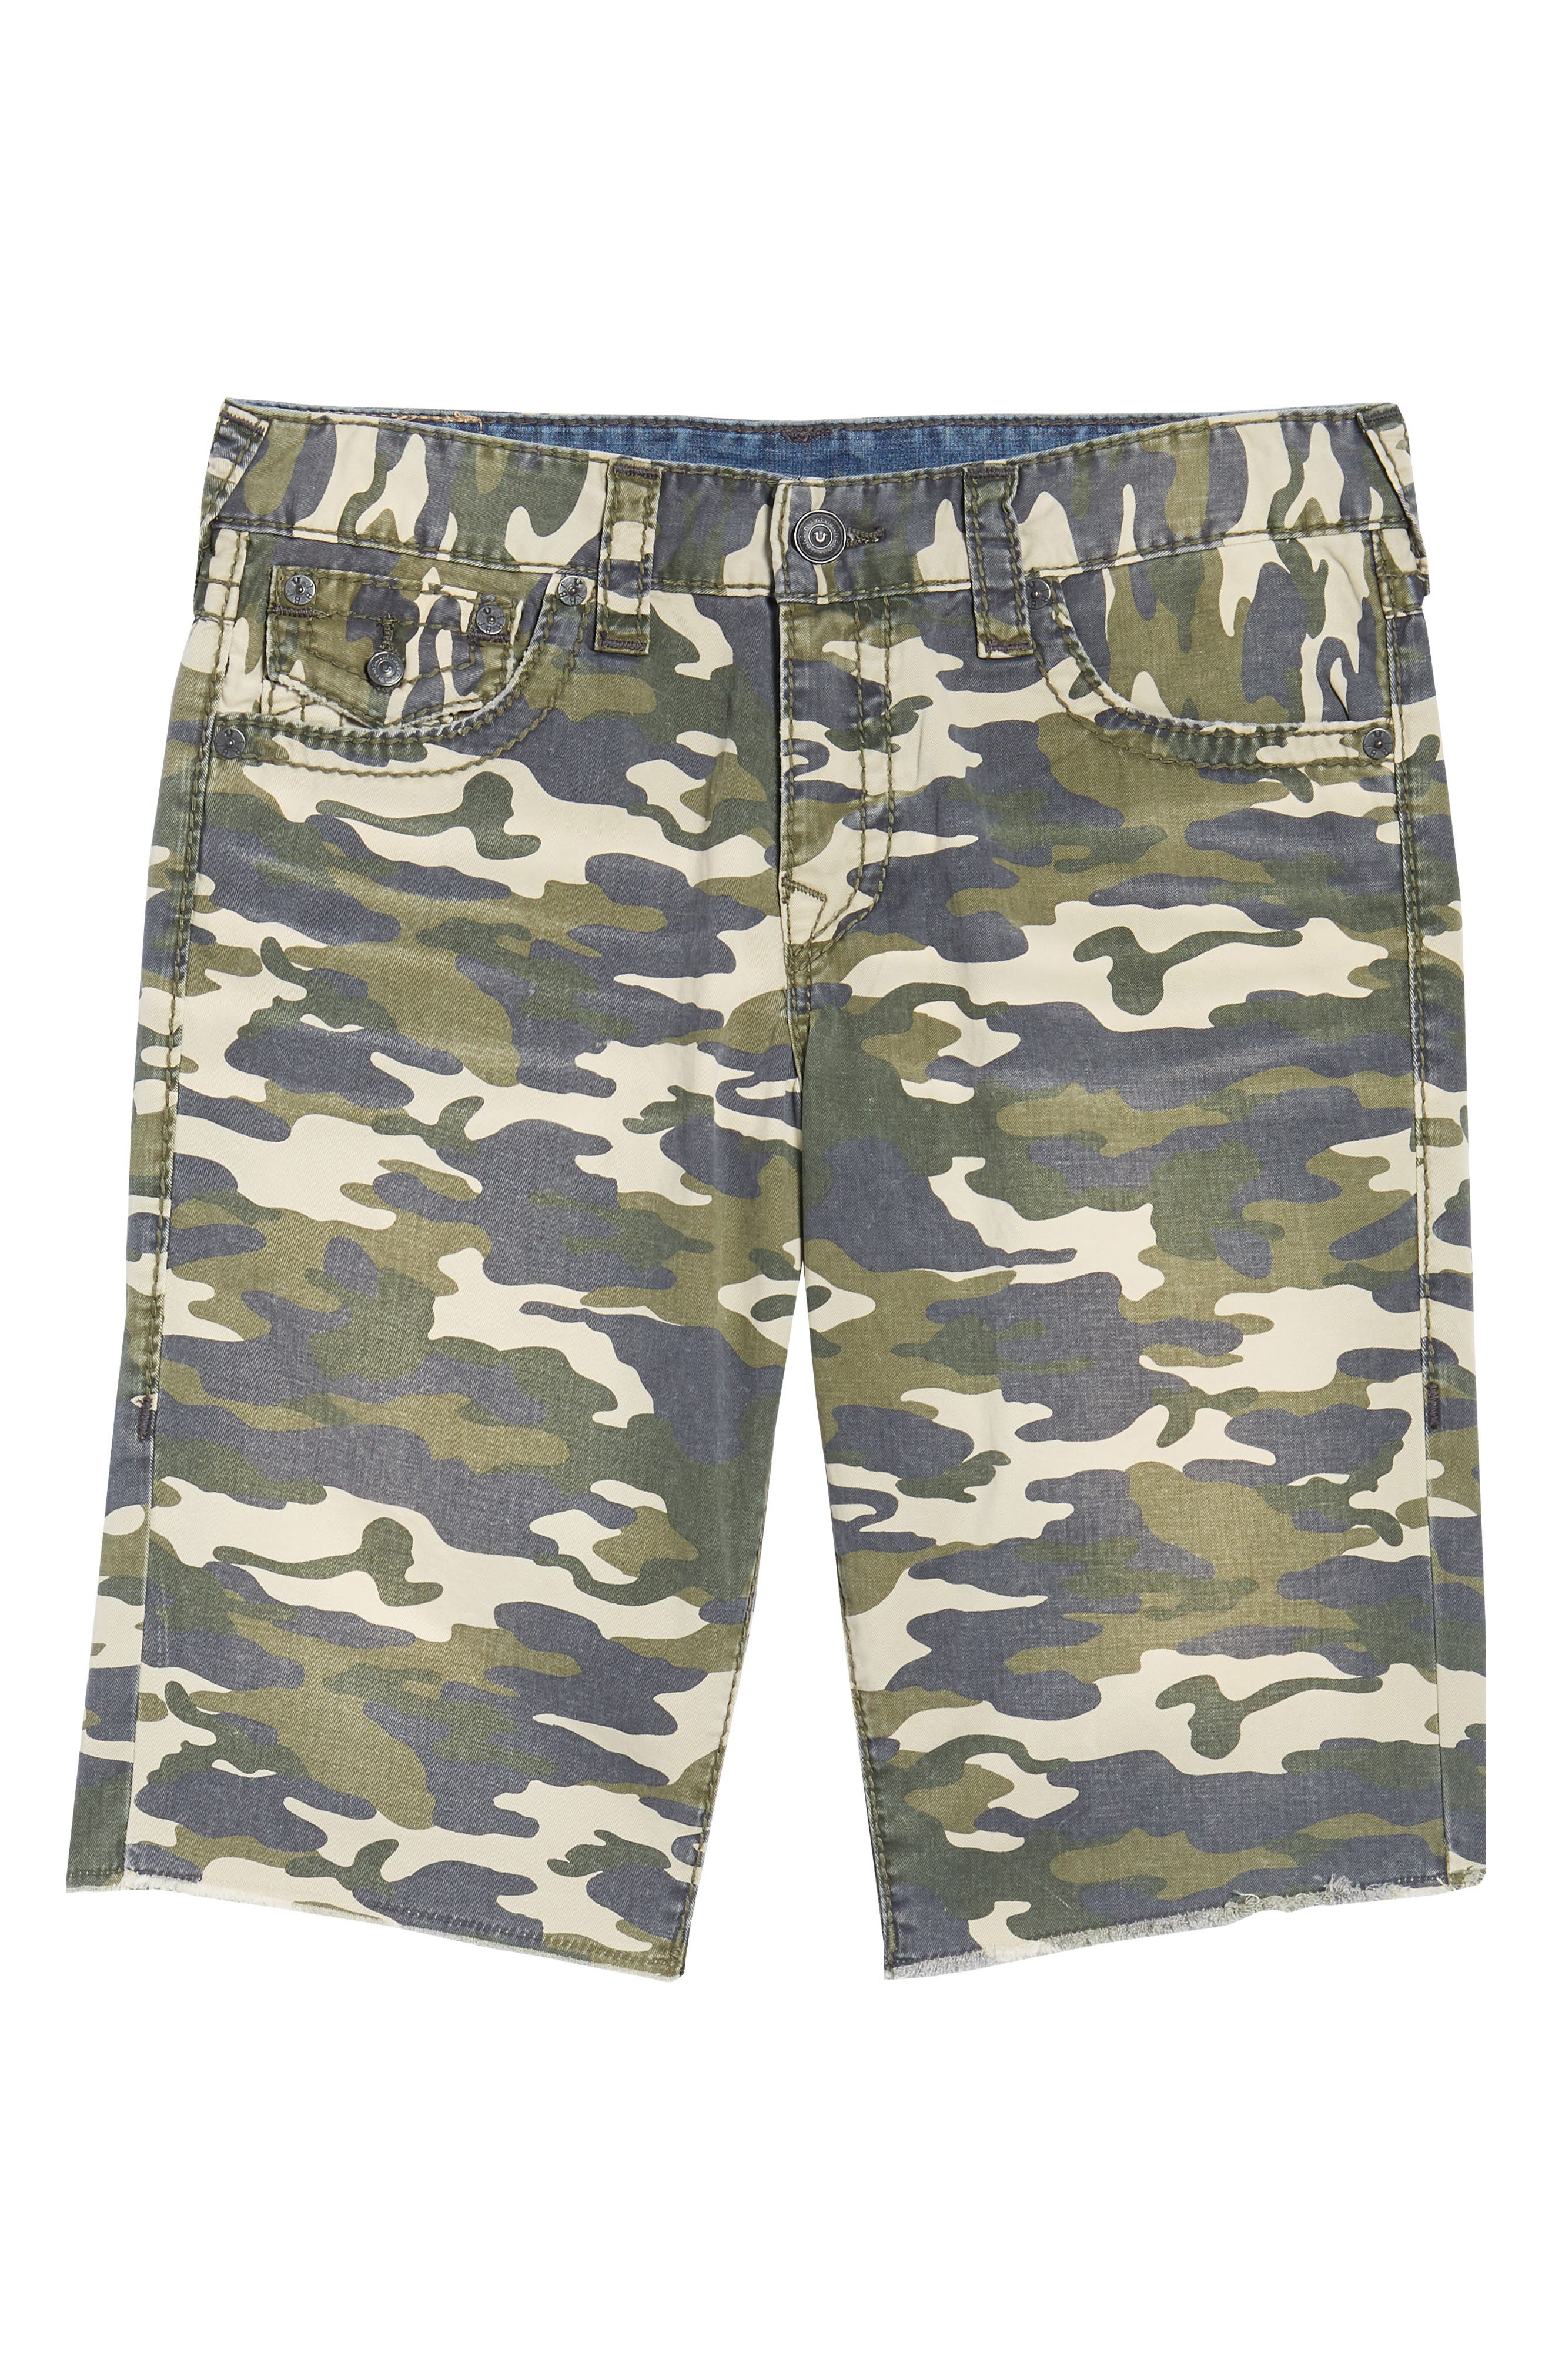 Ricky Relaxed Fit Shorts,                             Alternate thumbnail 6, color,                             TERRITORY